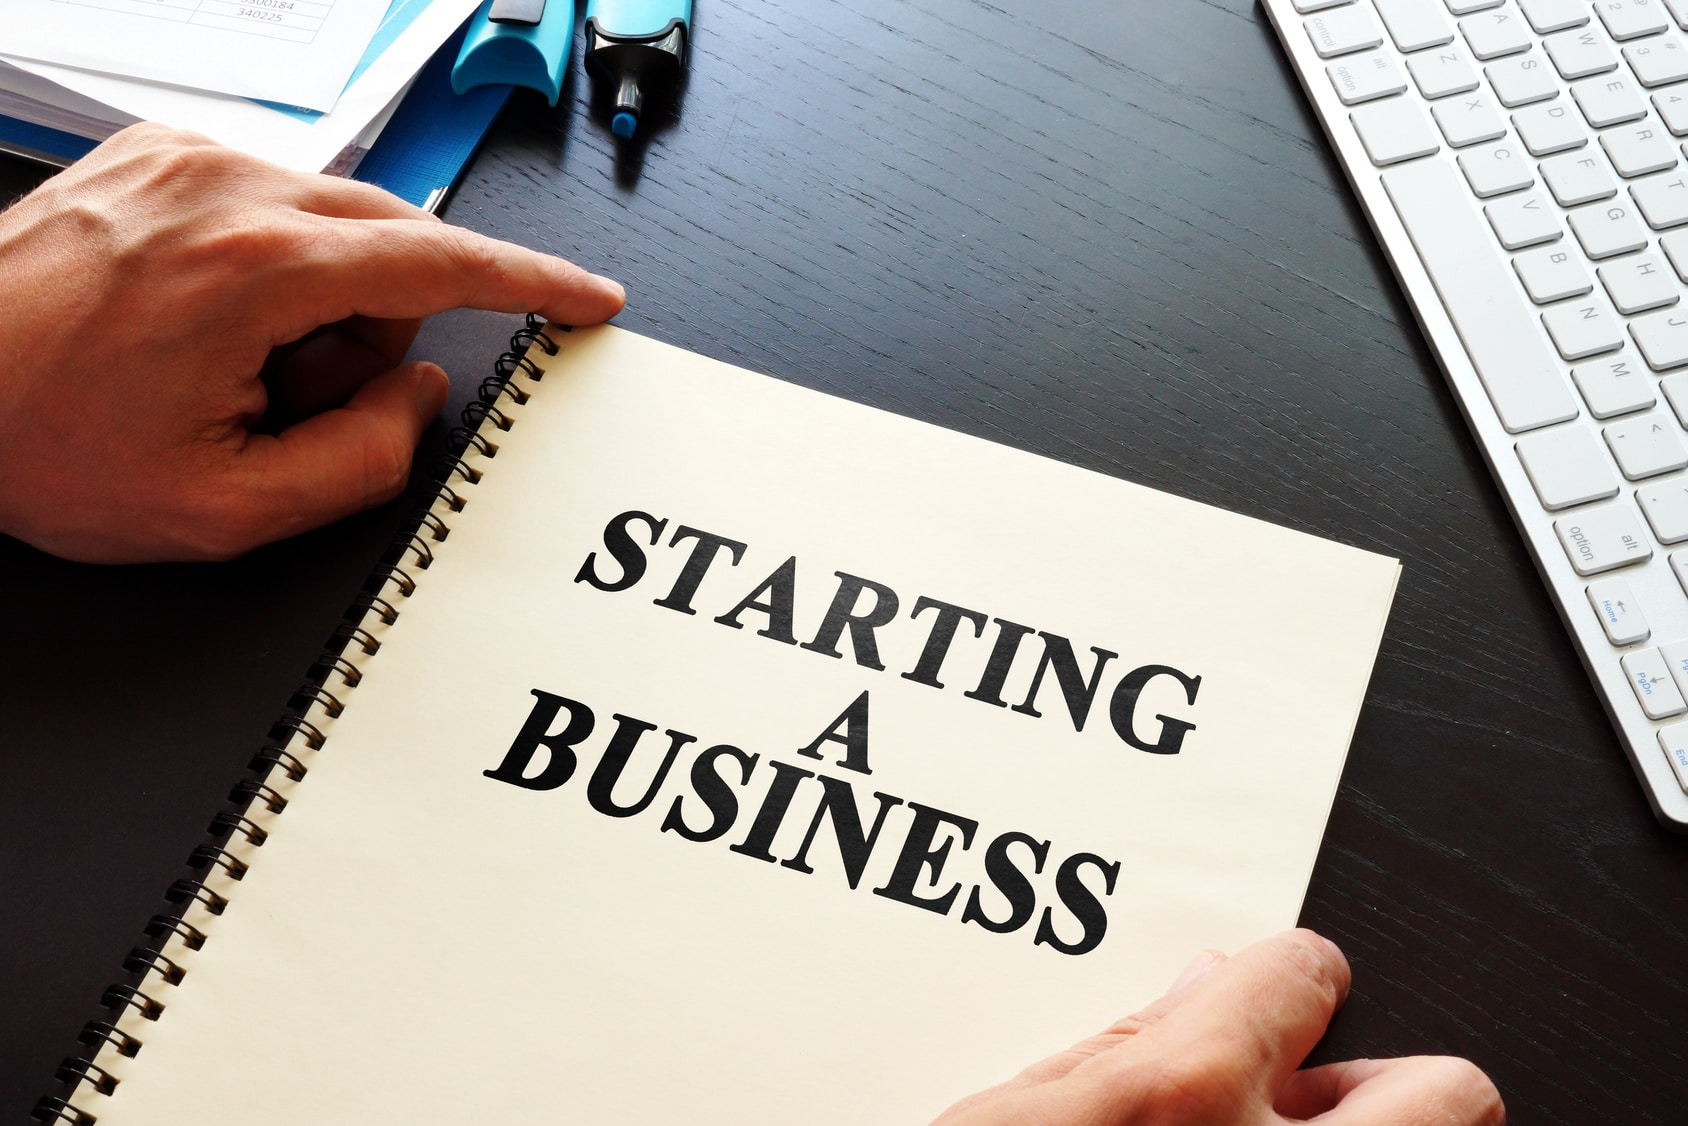 Starting a Business: The Basics on How to Start a Business (2020 Update)